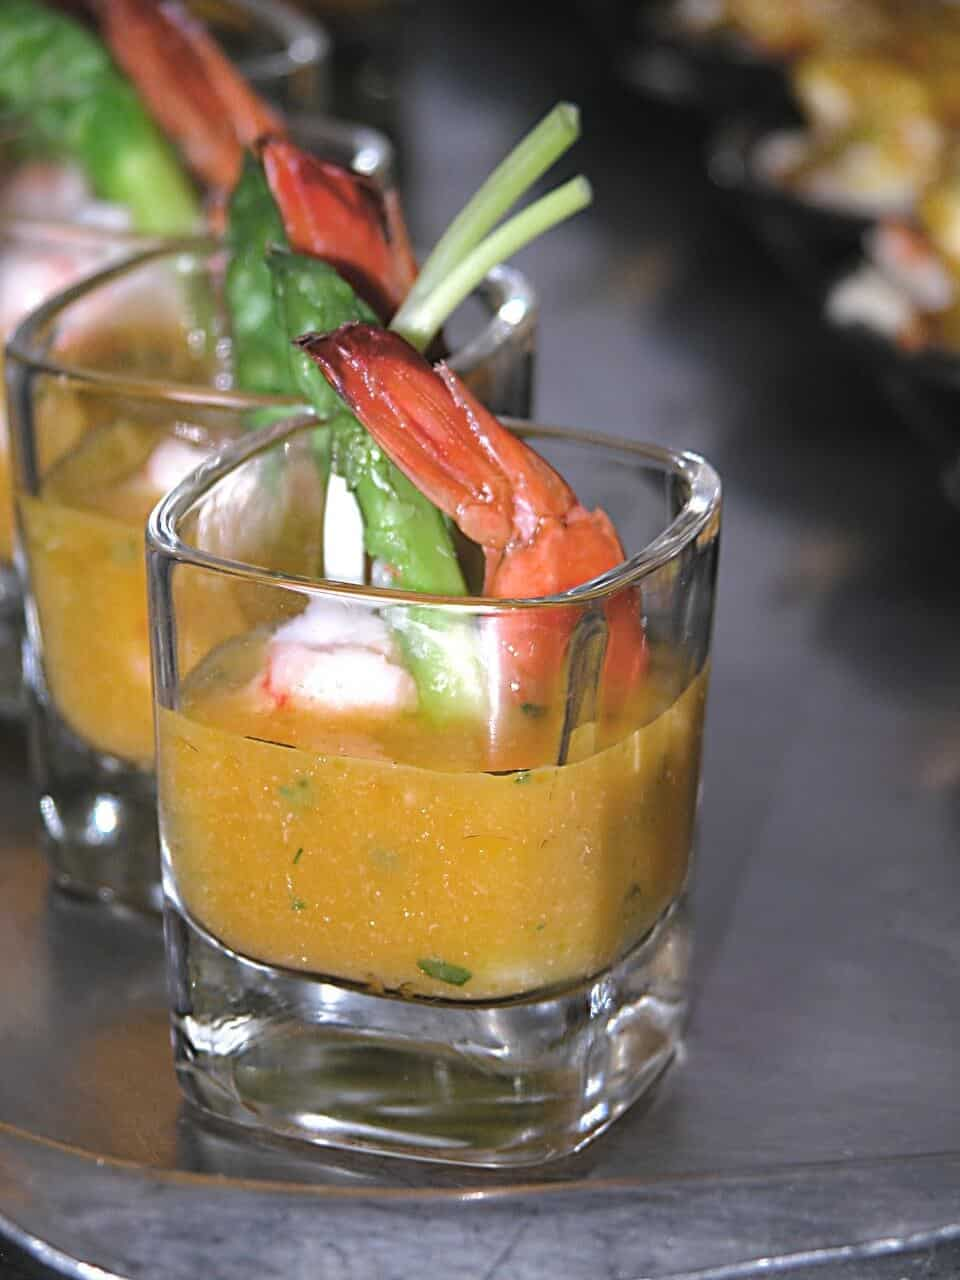 PRAWNS IN CARROT, LIME AND CILANTRO DIP